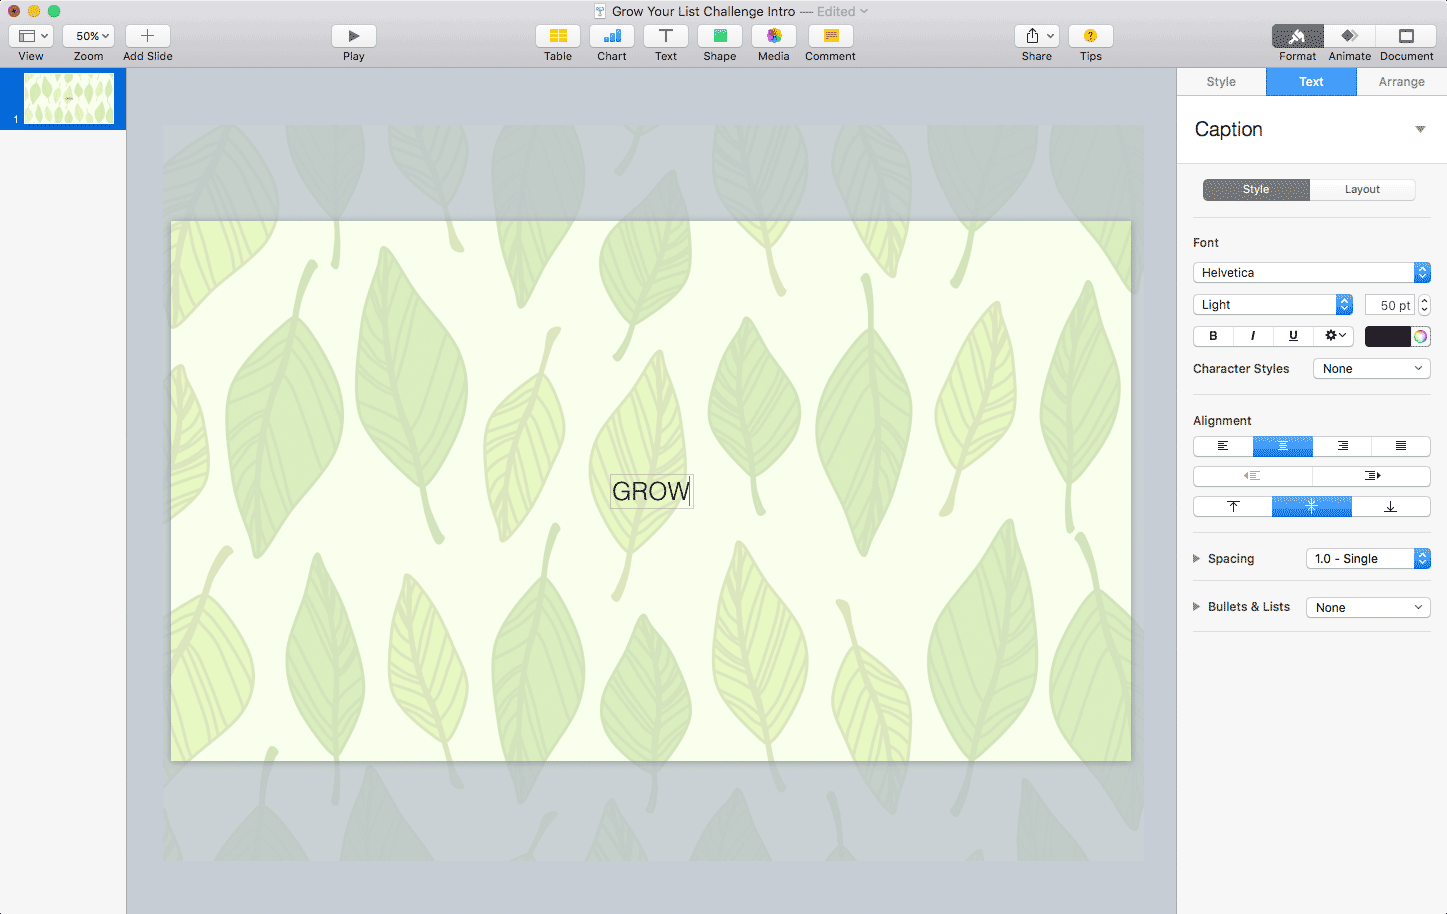 Keynote: Adding the GROW text